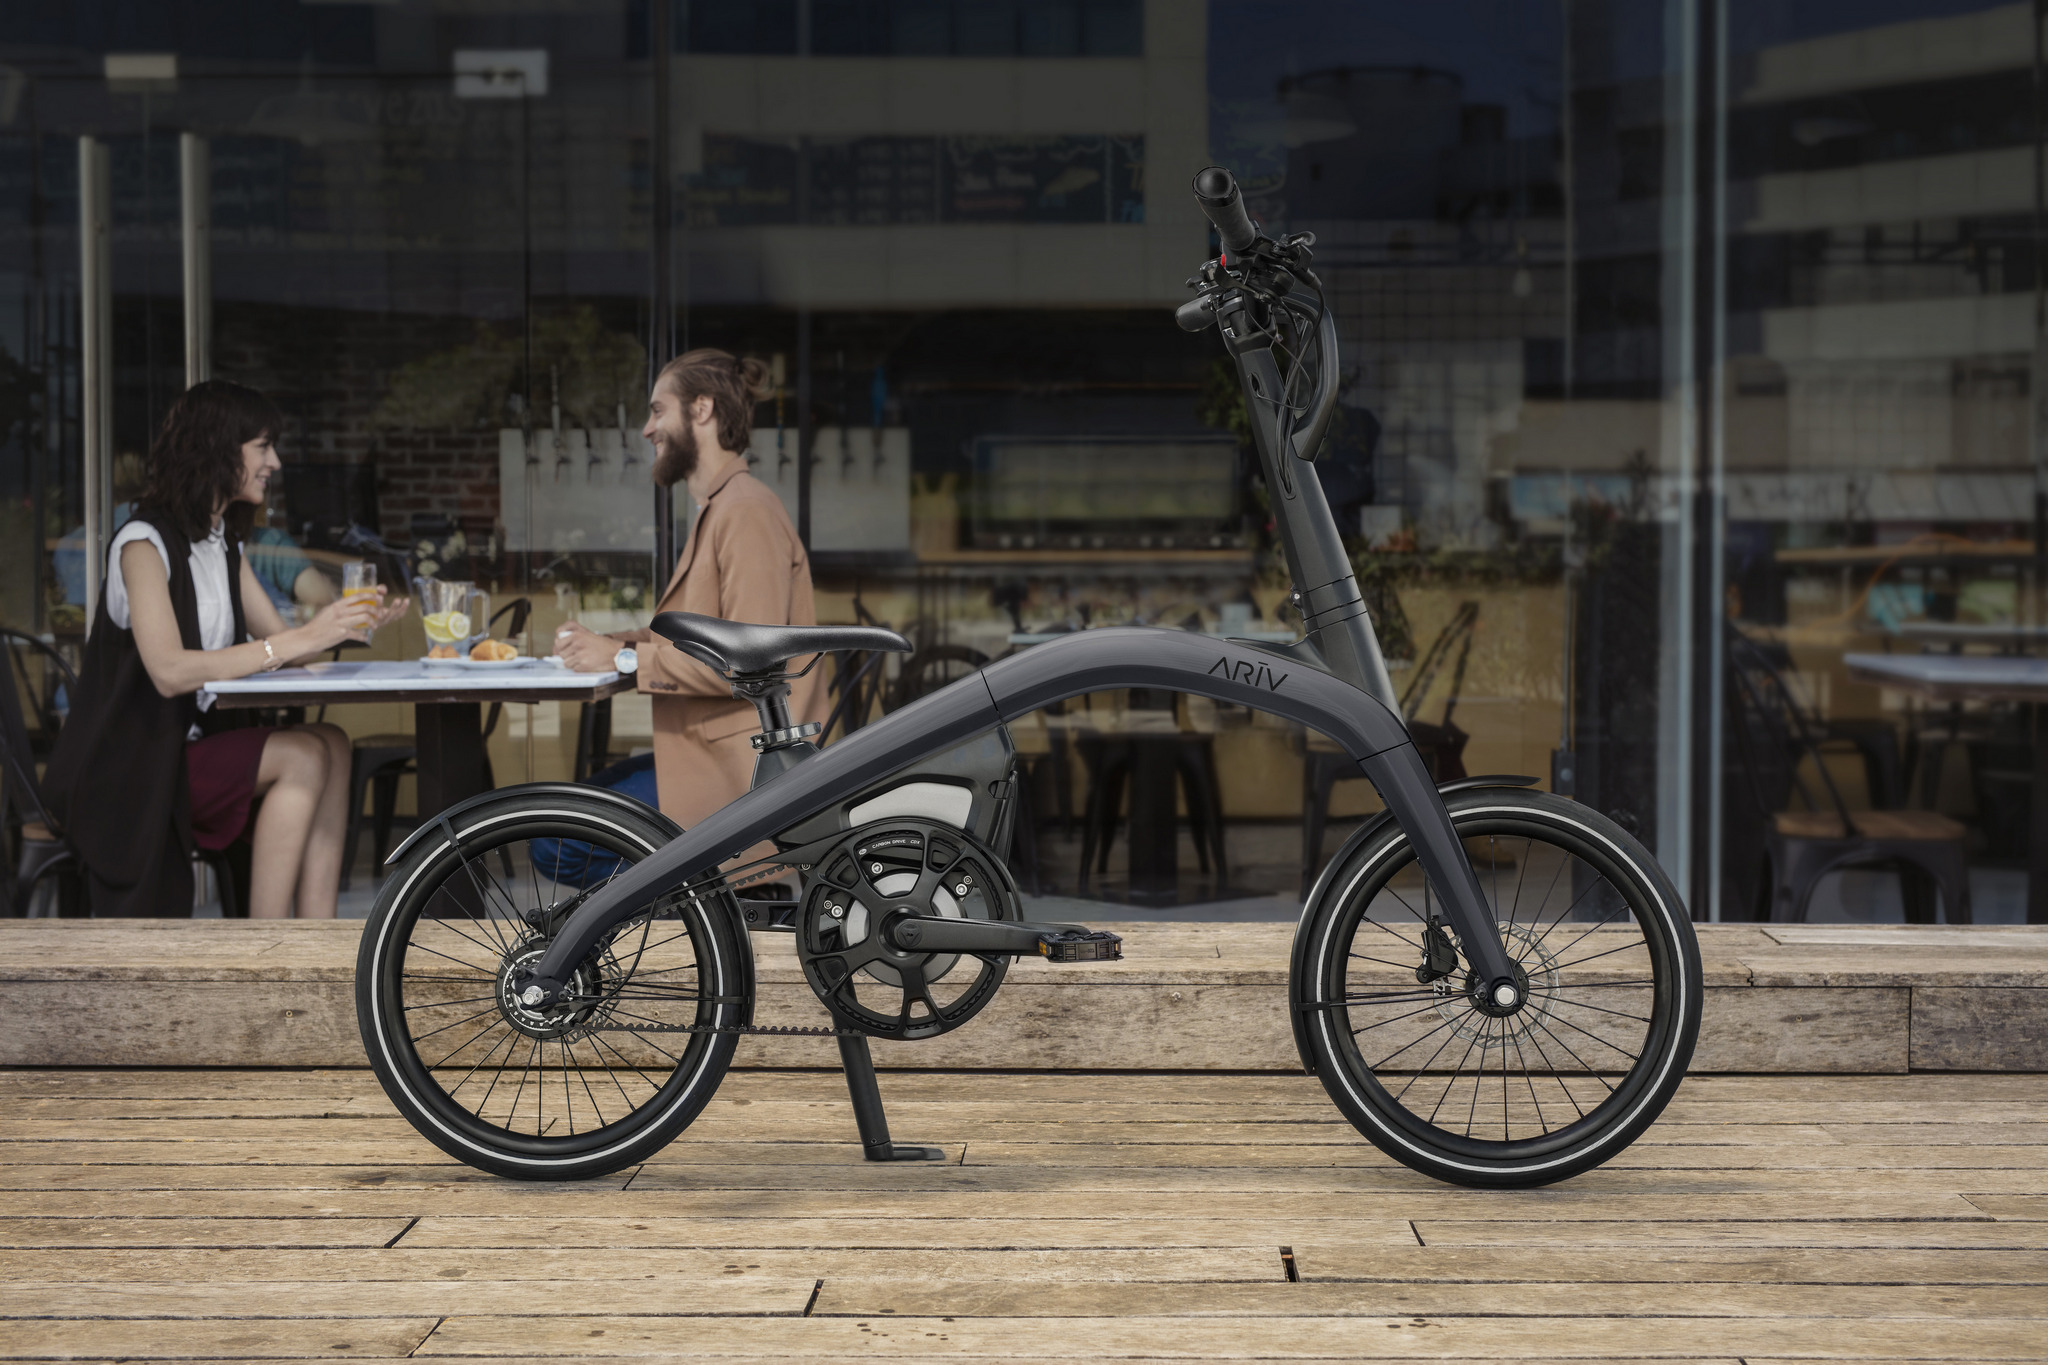 The ARĪV design team combined its automotive and cycling expert